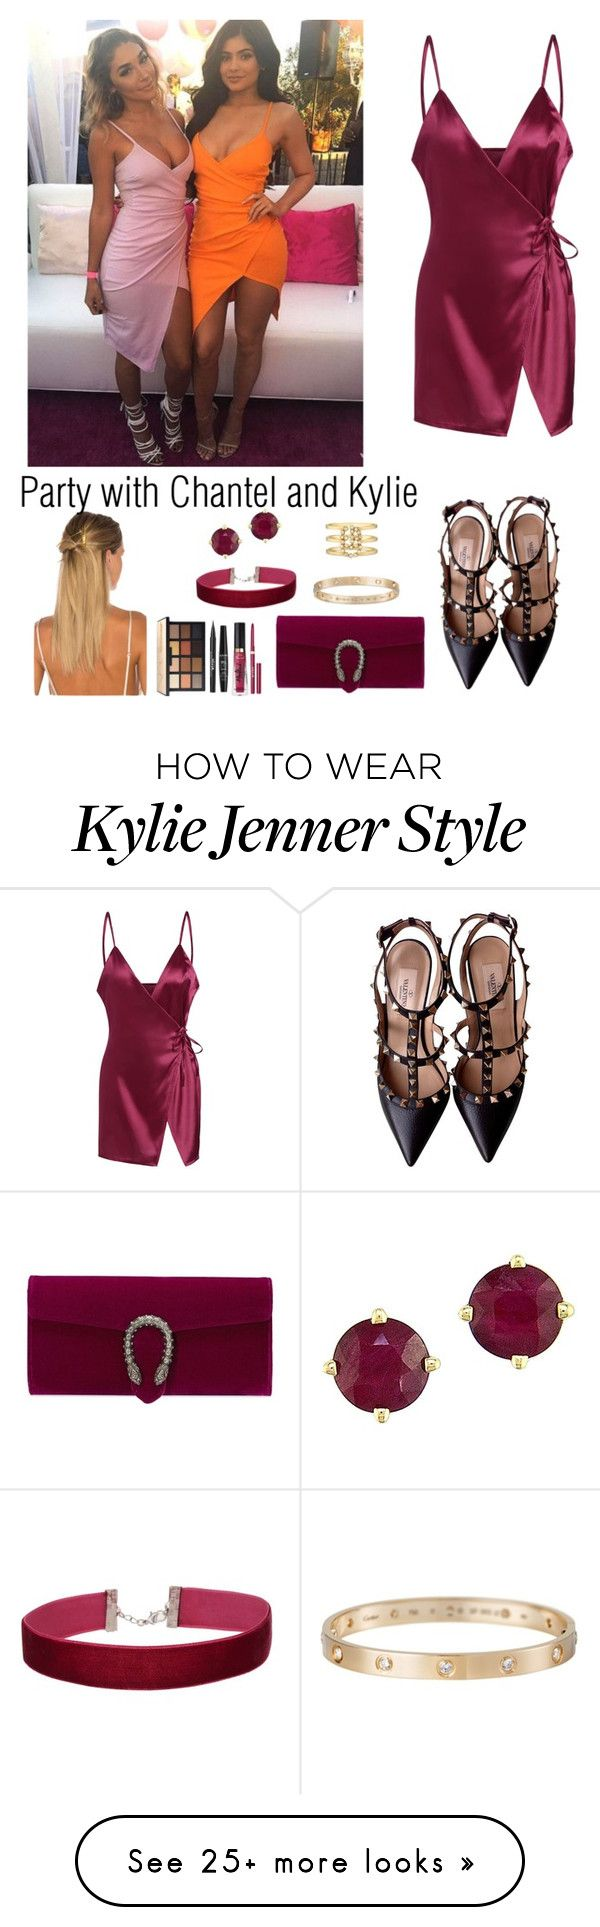 """""""Party with Chantel Jeffries and Kylie Jenner"""" by ap0dita on Polyvore featuring JEFFRIES, Valentino, HAIR DESIGNACCESS, Gucci, Stila, NYX, Too Faced Cosmetics, Effy Jewelry, Miss Selfridge and Cartier"""